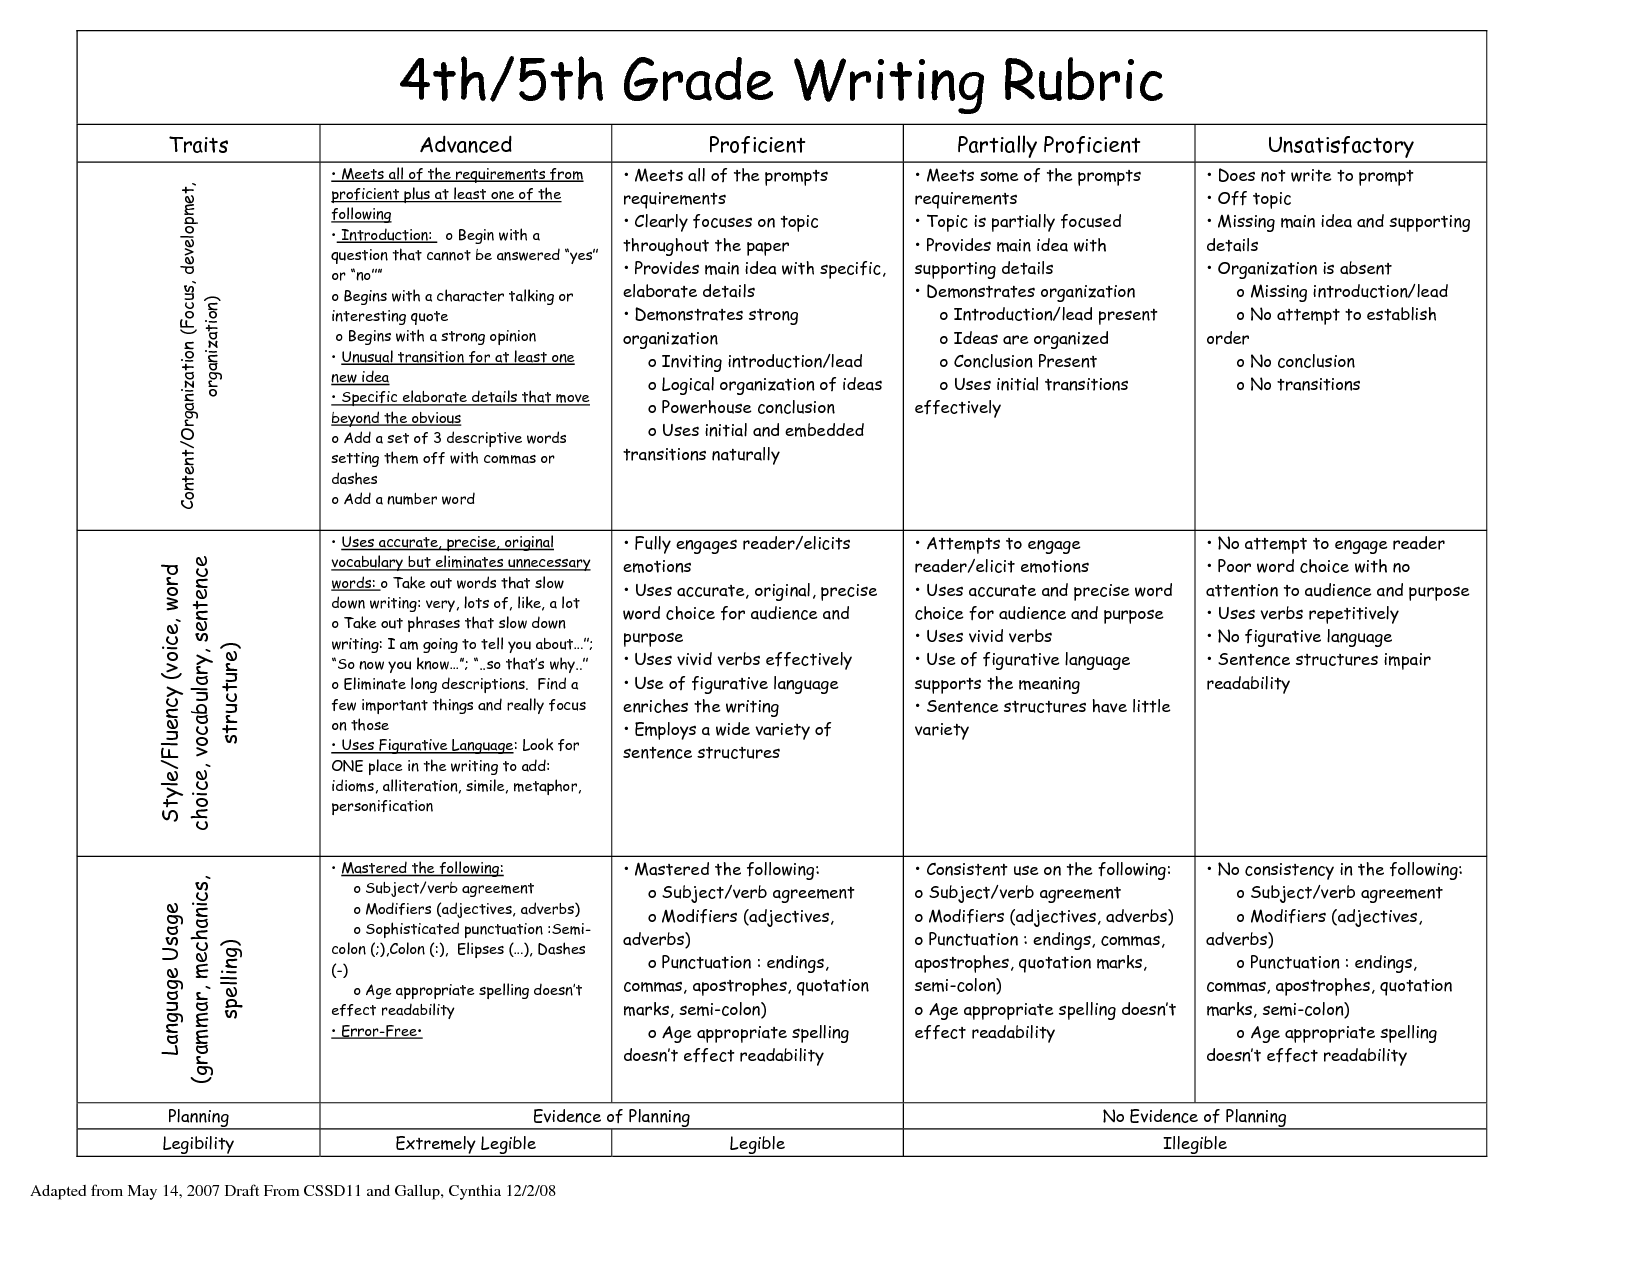 022 4th Grade Opinion Writing Rubric 215476 Essay Example Creative Awesome Essays Topics For 5 4 Full